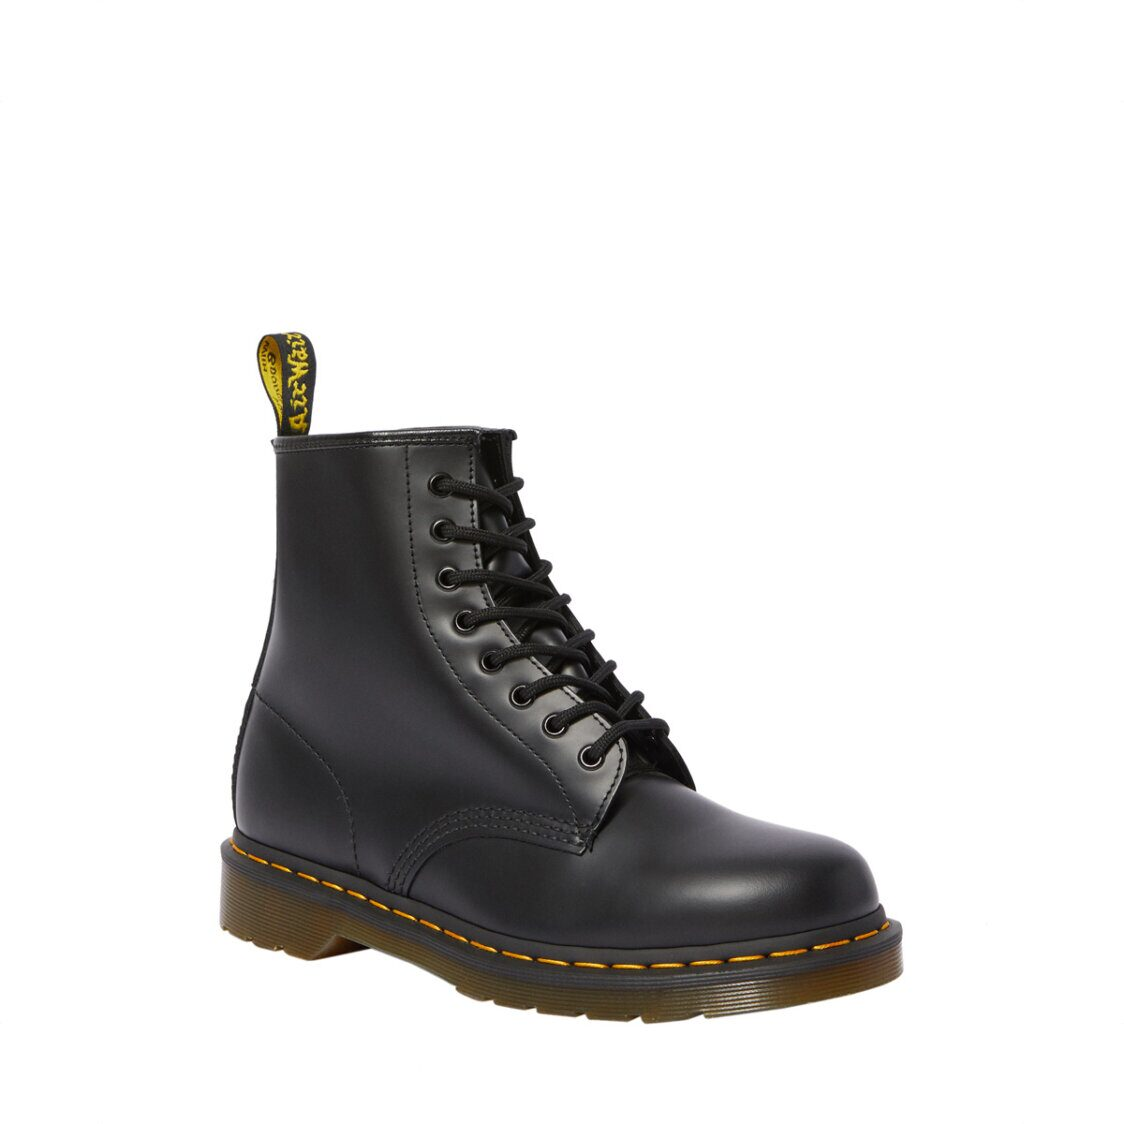 Dr Marten 1460 Smooth Leather 8 Eyelet Lace Up Boots